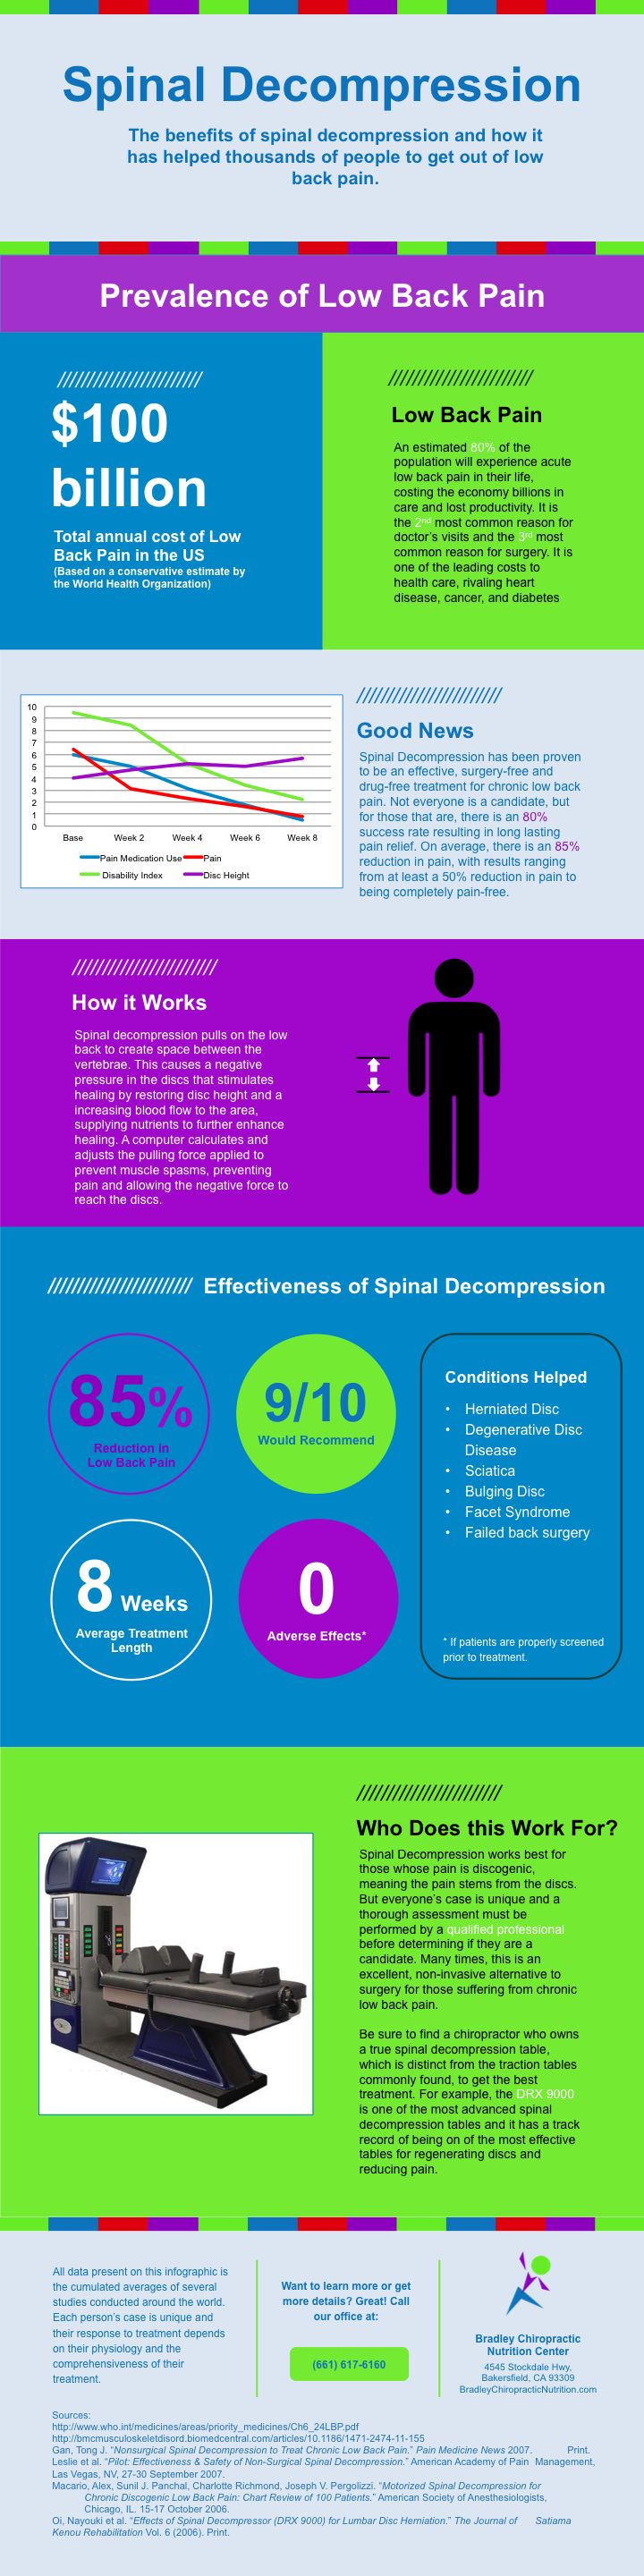 Orange county ca s premier non surgical spinal decompression clinic - Effectiveness Of Spinal Decompression